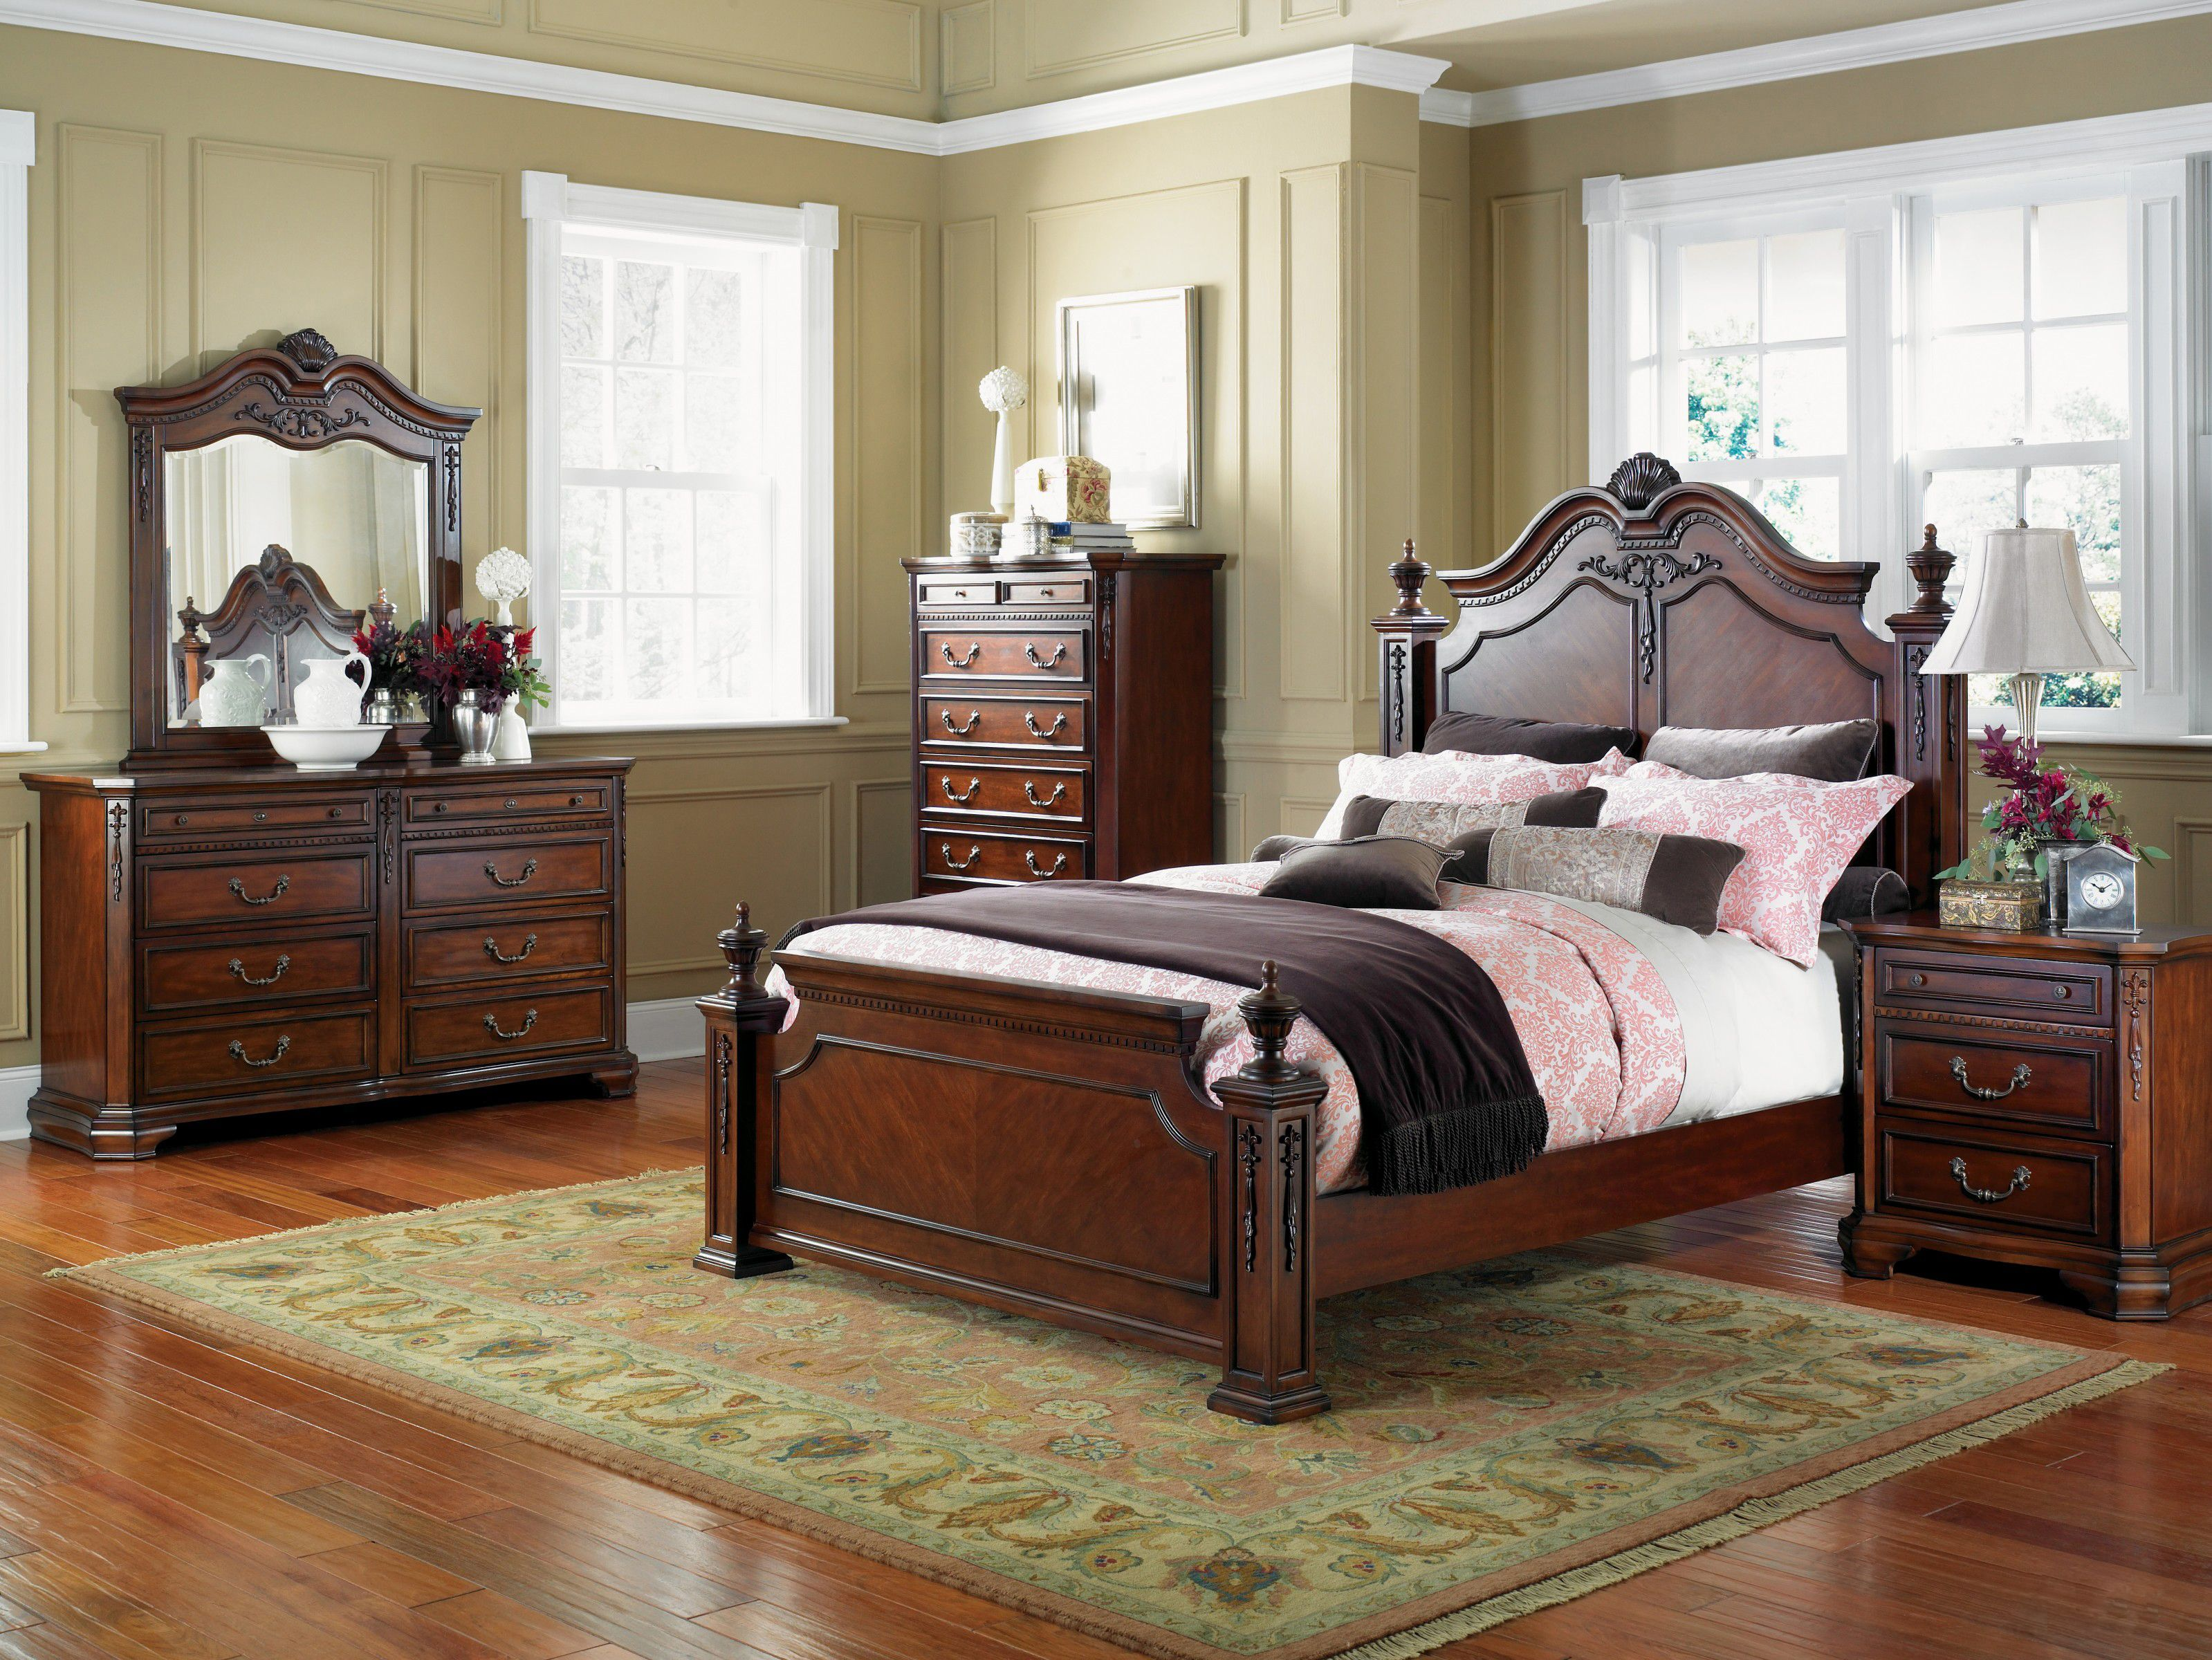 Bedroom Dresser Sets · AP Interio Is One Of The Best Custom Made Furniture  Manufacturers In Pune. If